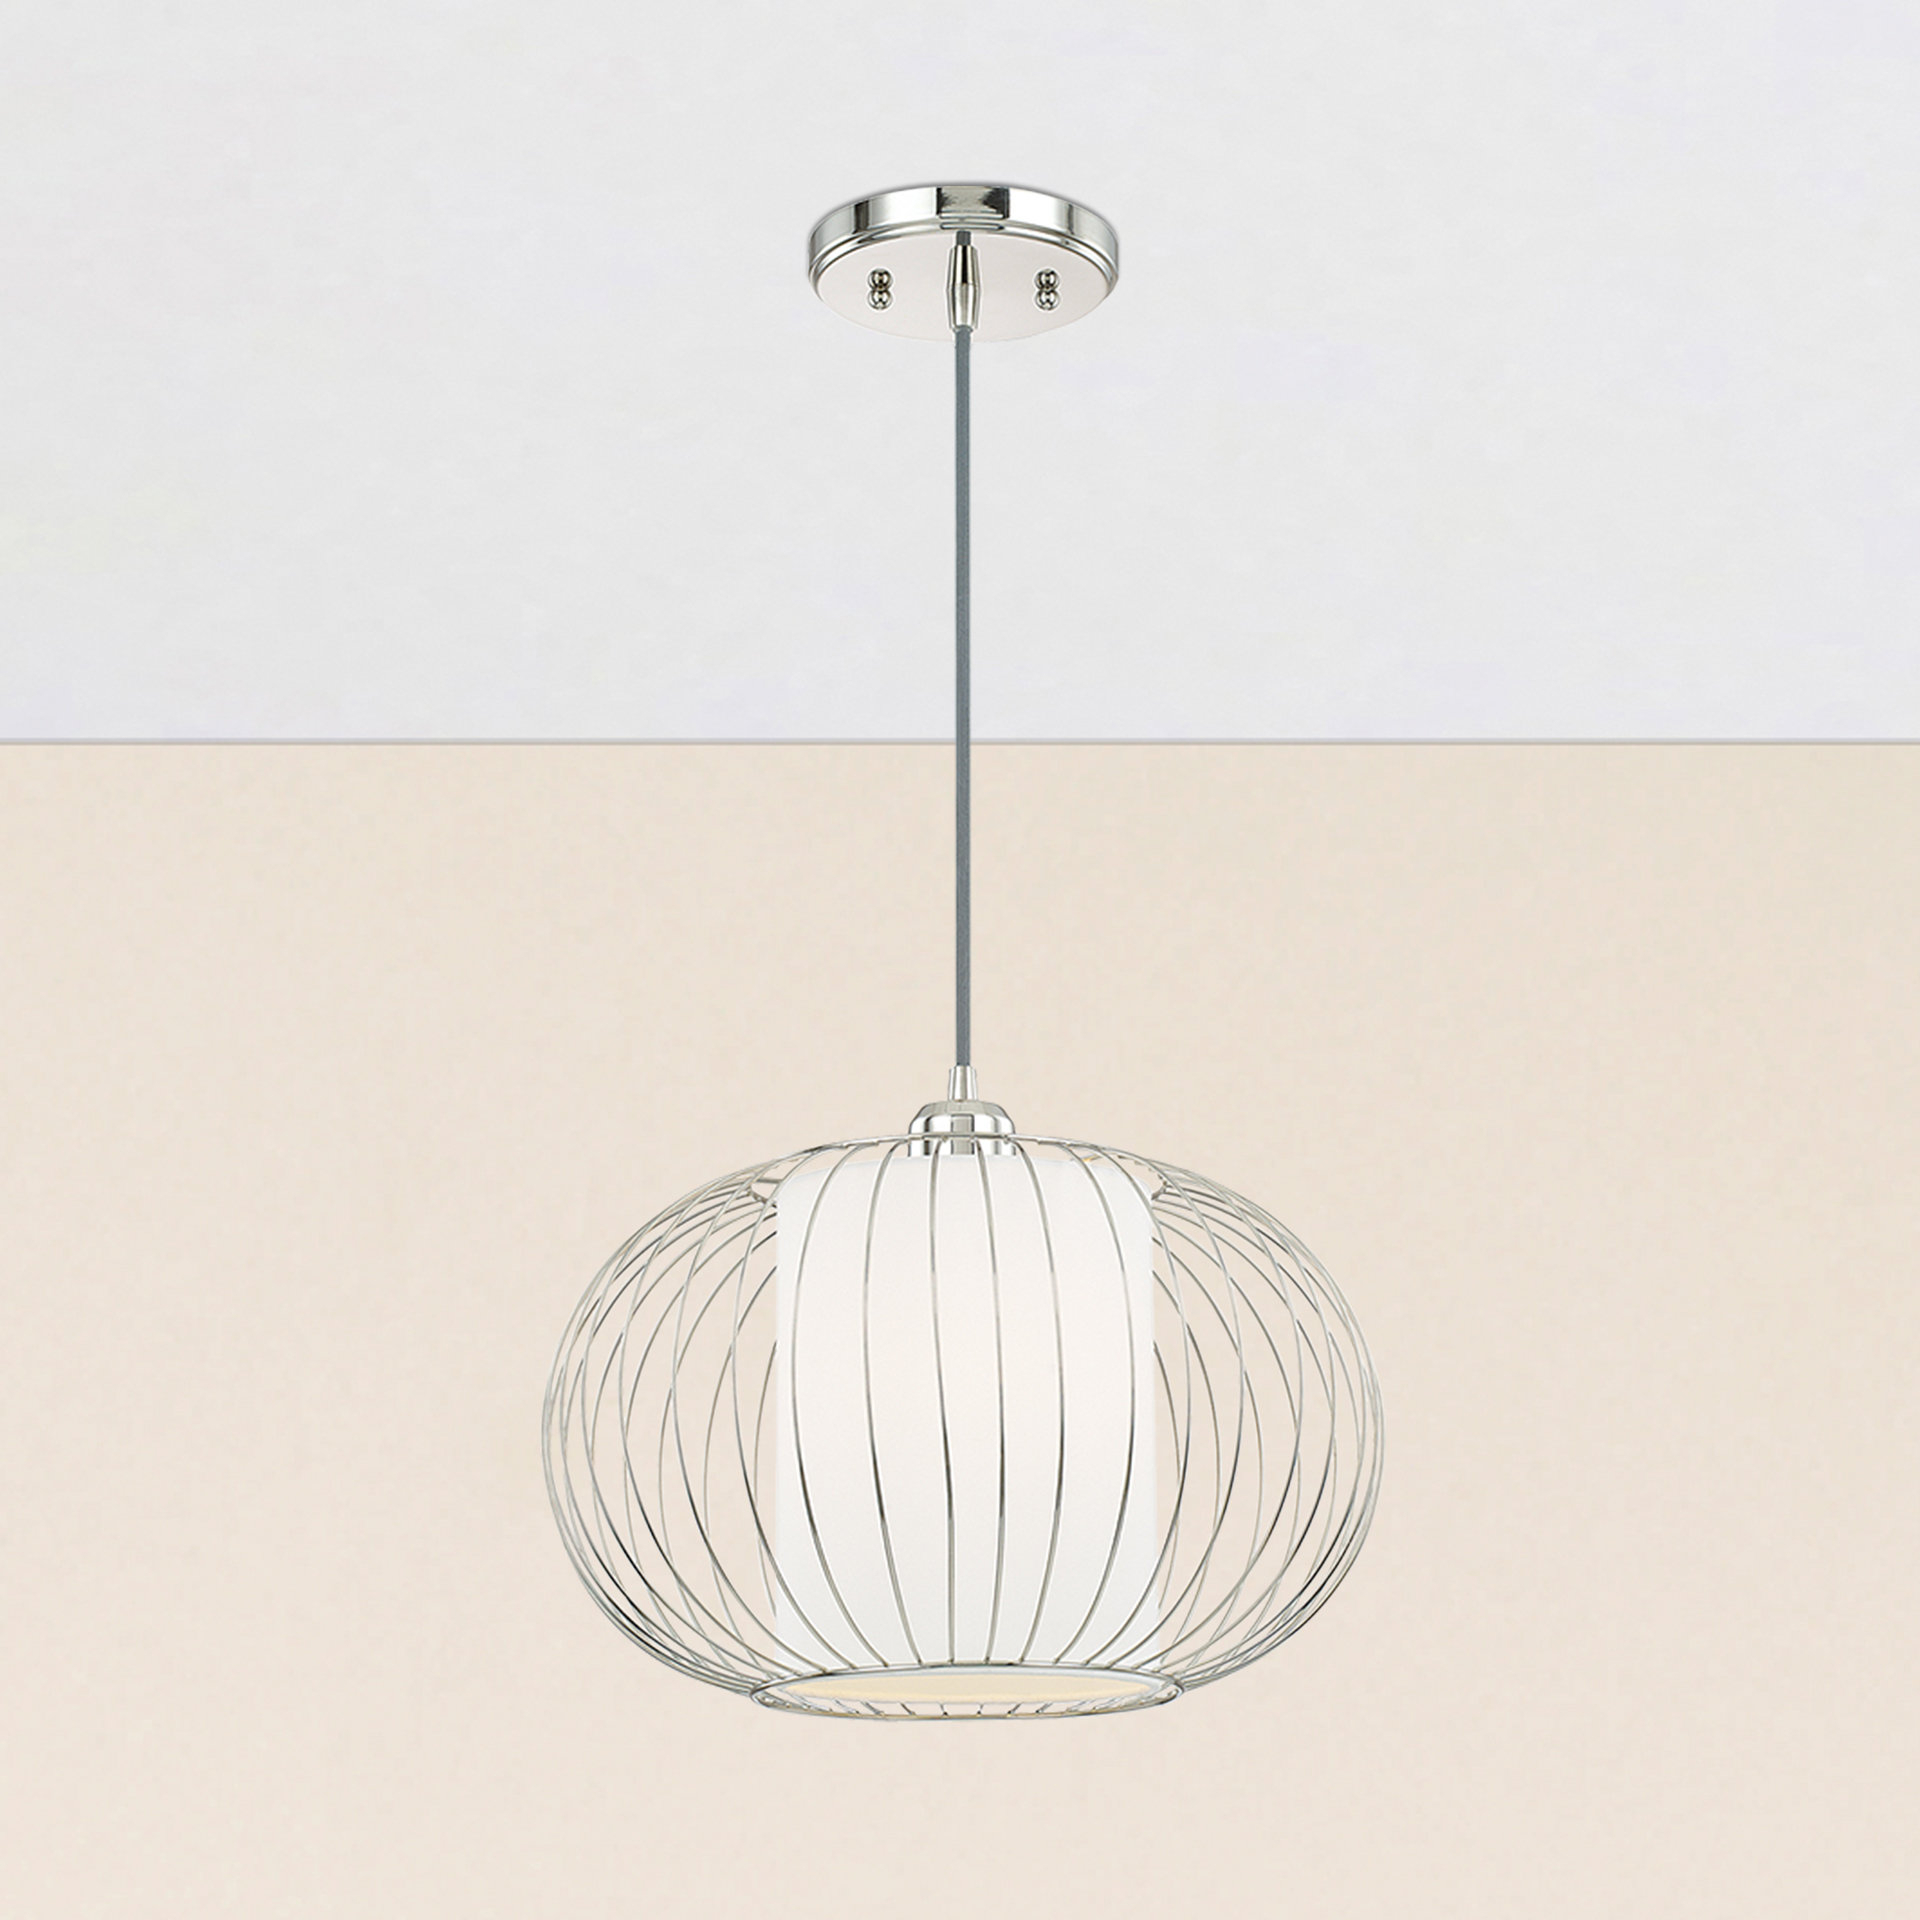 Abadie 1 Light Globe Pendant Pertaining To Most Up To Date Demi 1 Light Globe Pendants (View 2 of 20)